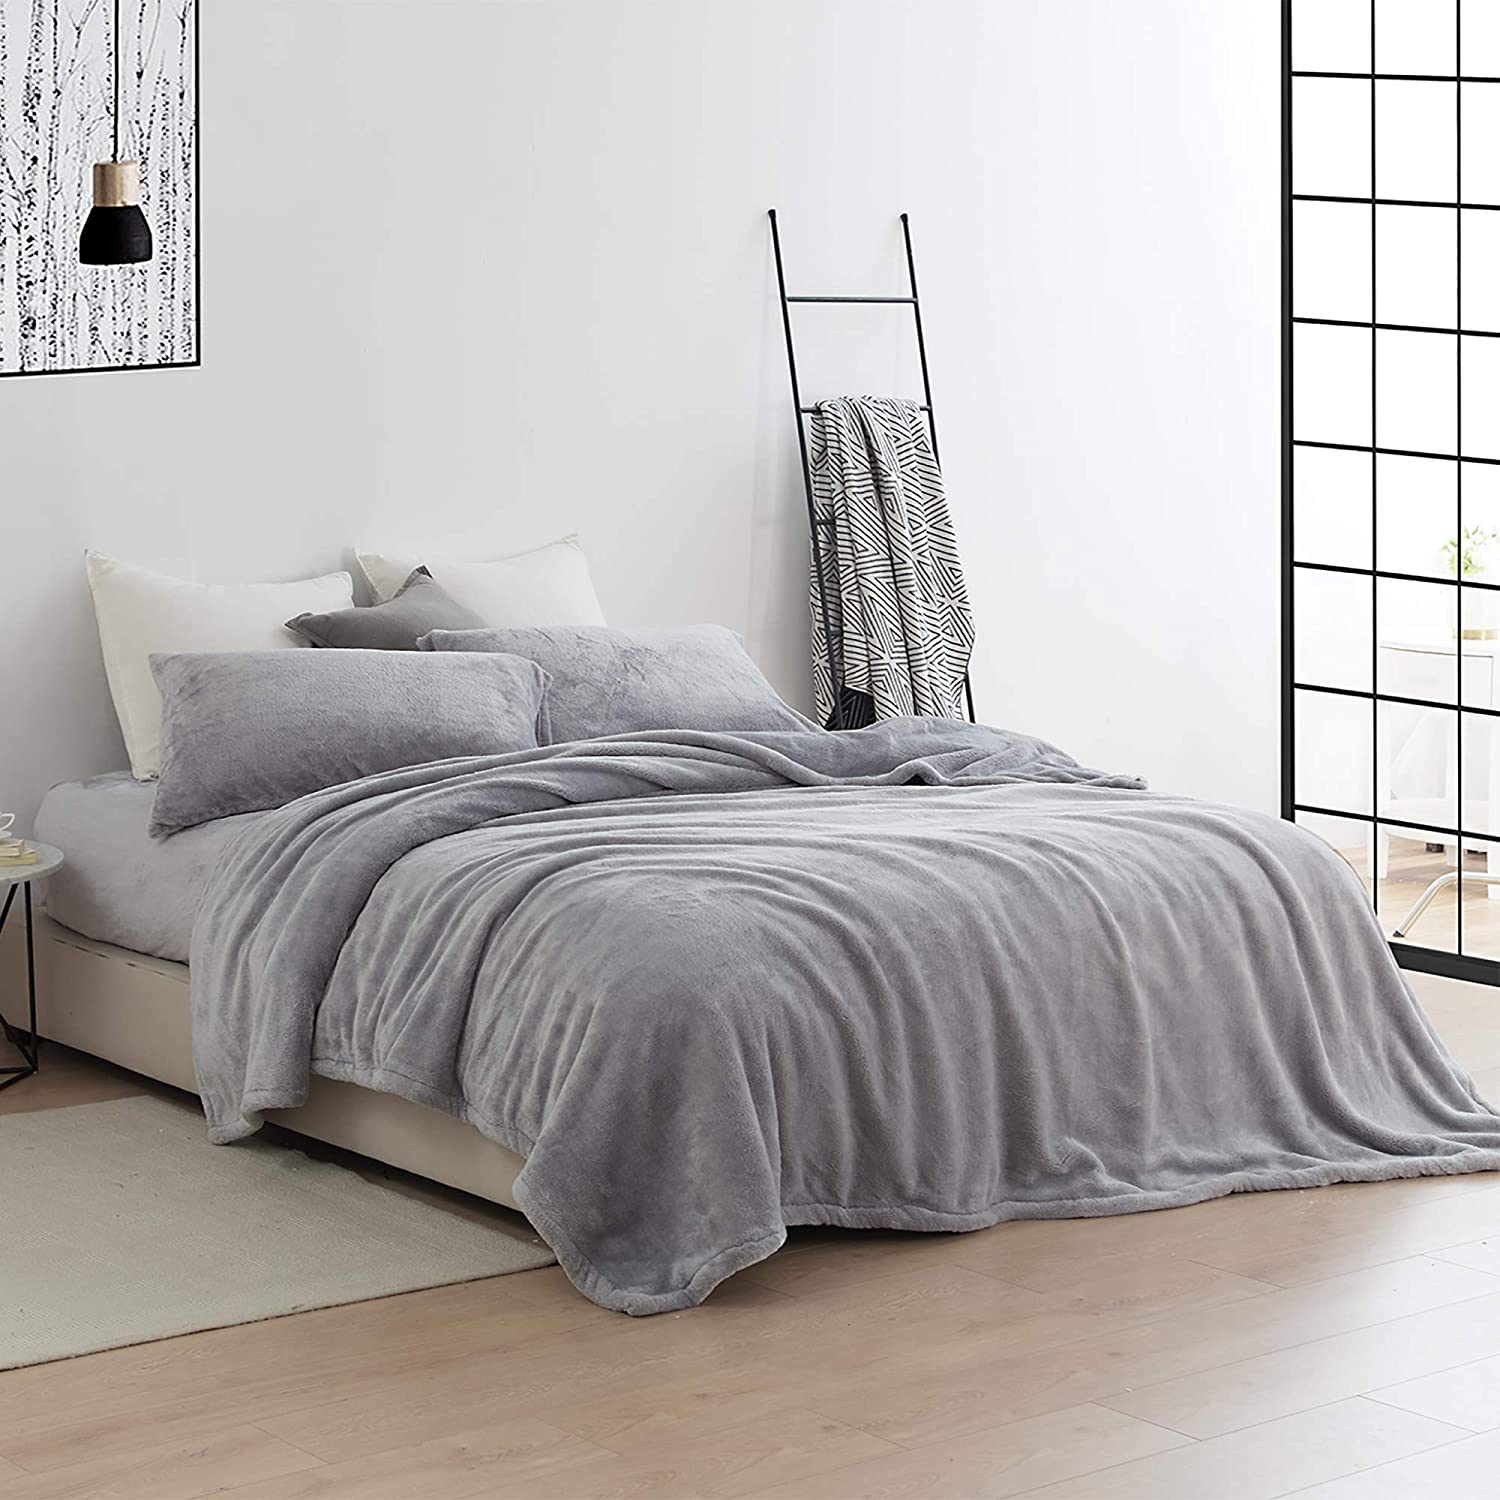 Alloy Byourbed Coma Inducer King Sheets Me Sooo Comfy